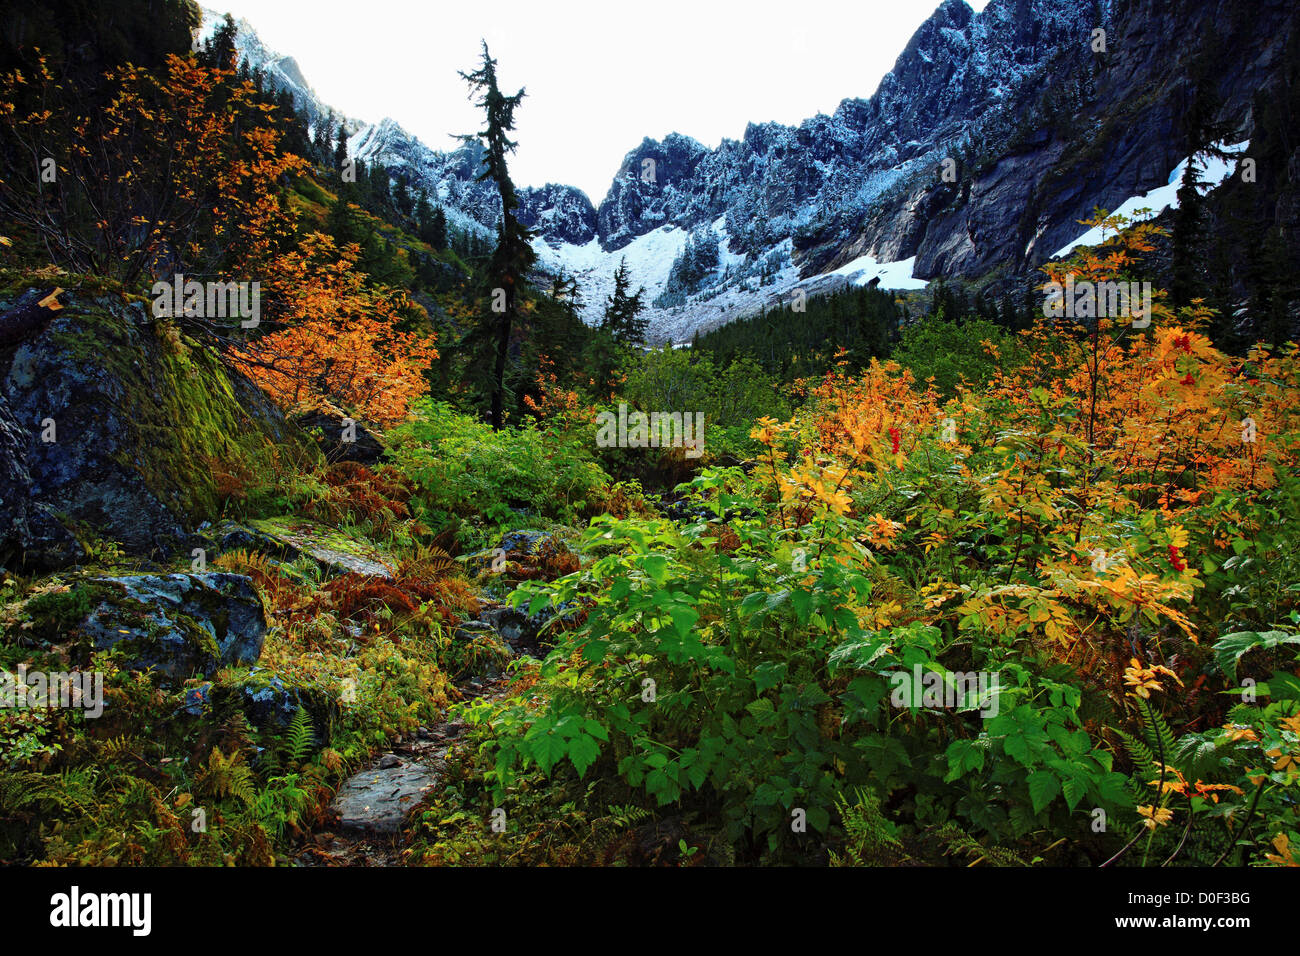 Fall color along Headlee Pass Trail and Wirtz Basin. - Stock Image